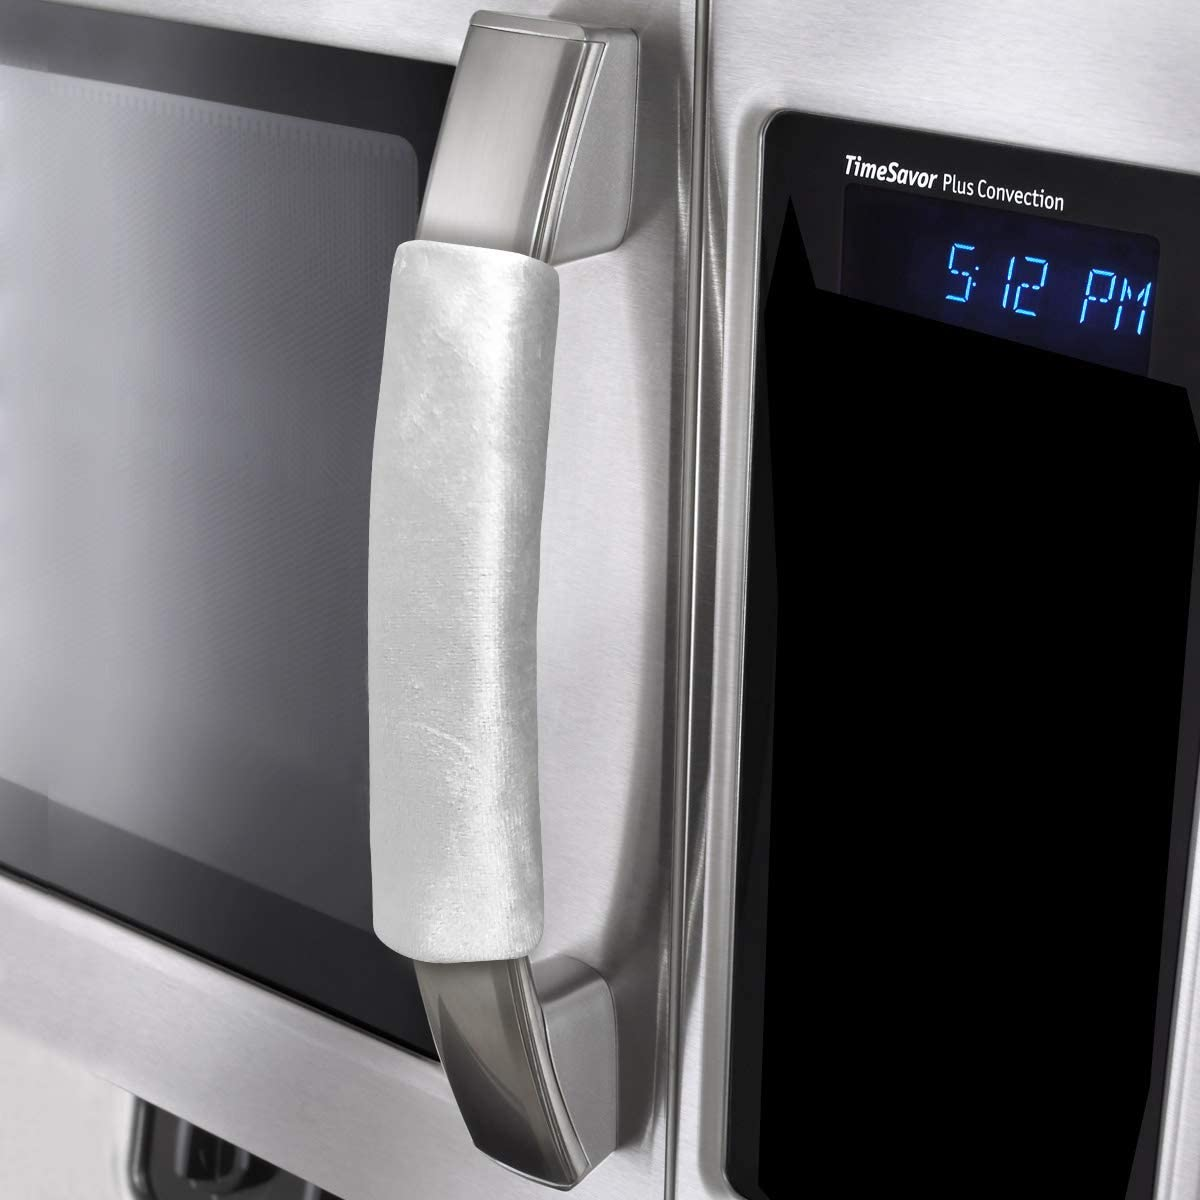 """OUGAR8 Microwave Door Handle Covers,Keep Your Kitchen Appliance Clean from Smudges, Fingertips,Drips&Food Stains,Perfect for Oven(6"""" L3.5W, Gray)"""